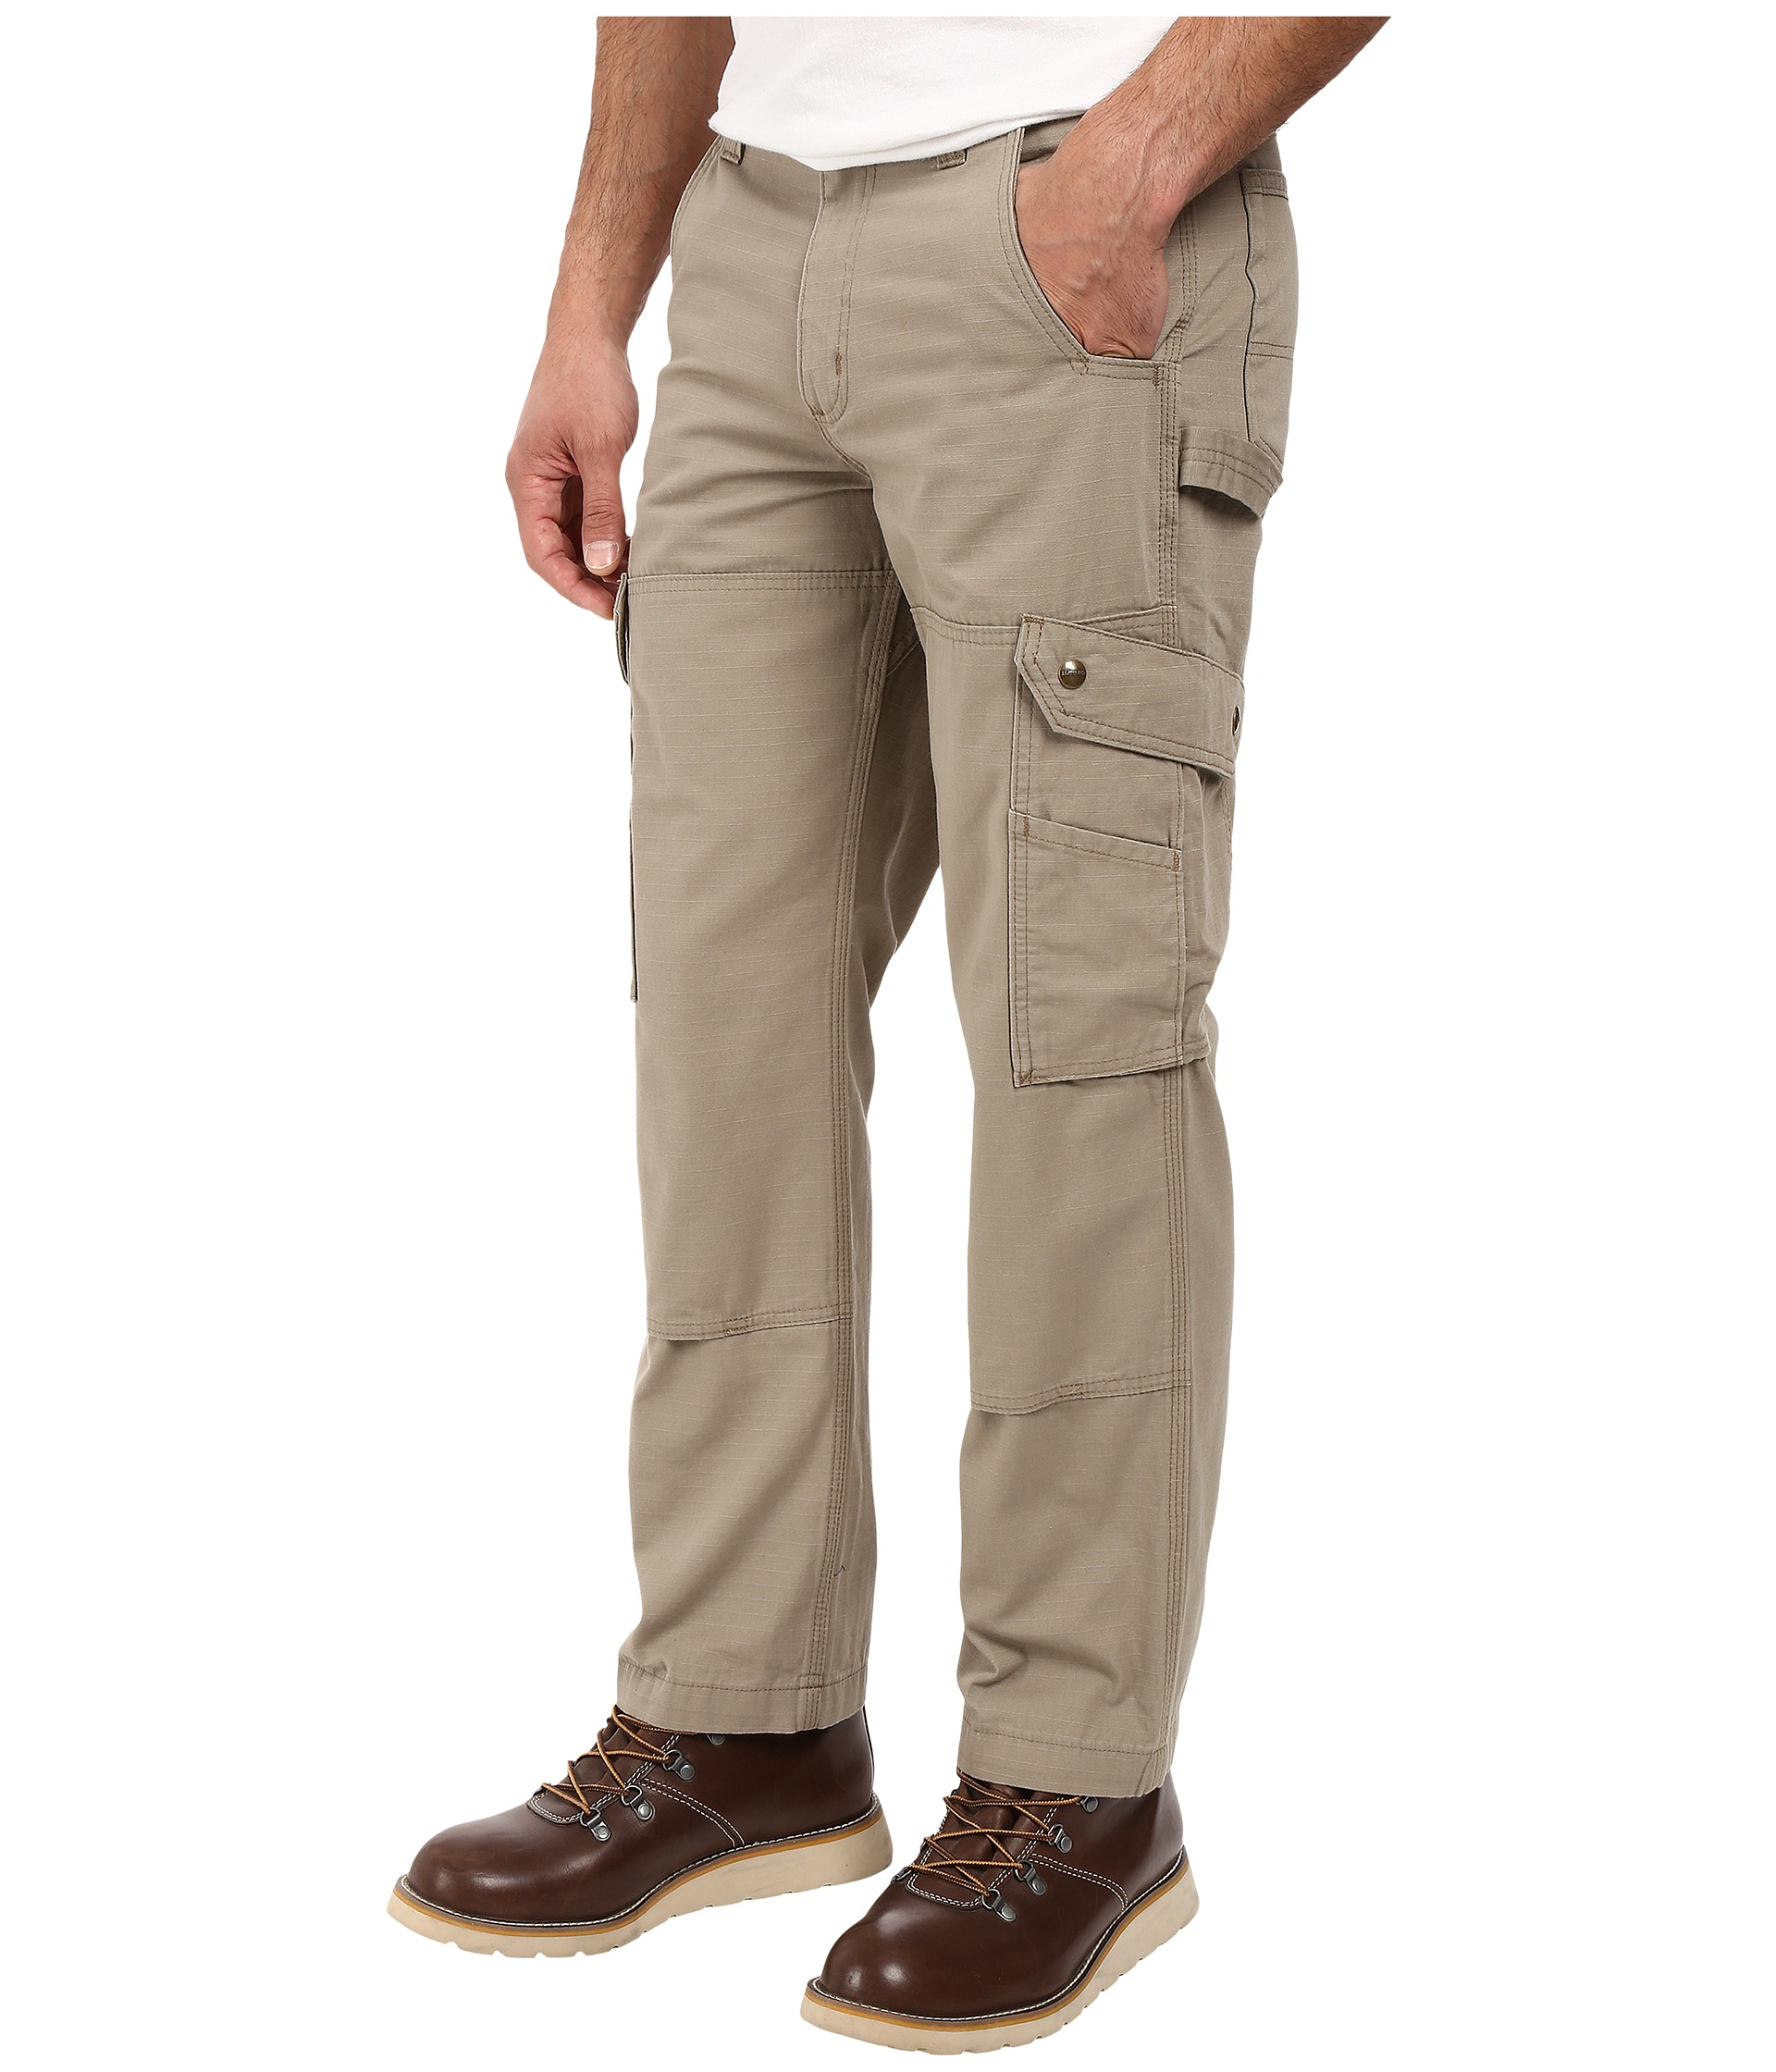 Innovative Carhartt Rugged Cargo Pant  Zapposcom Free Shipping BOTH Ways